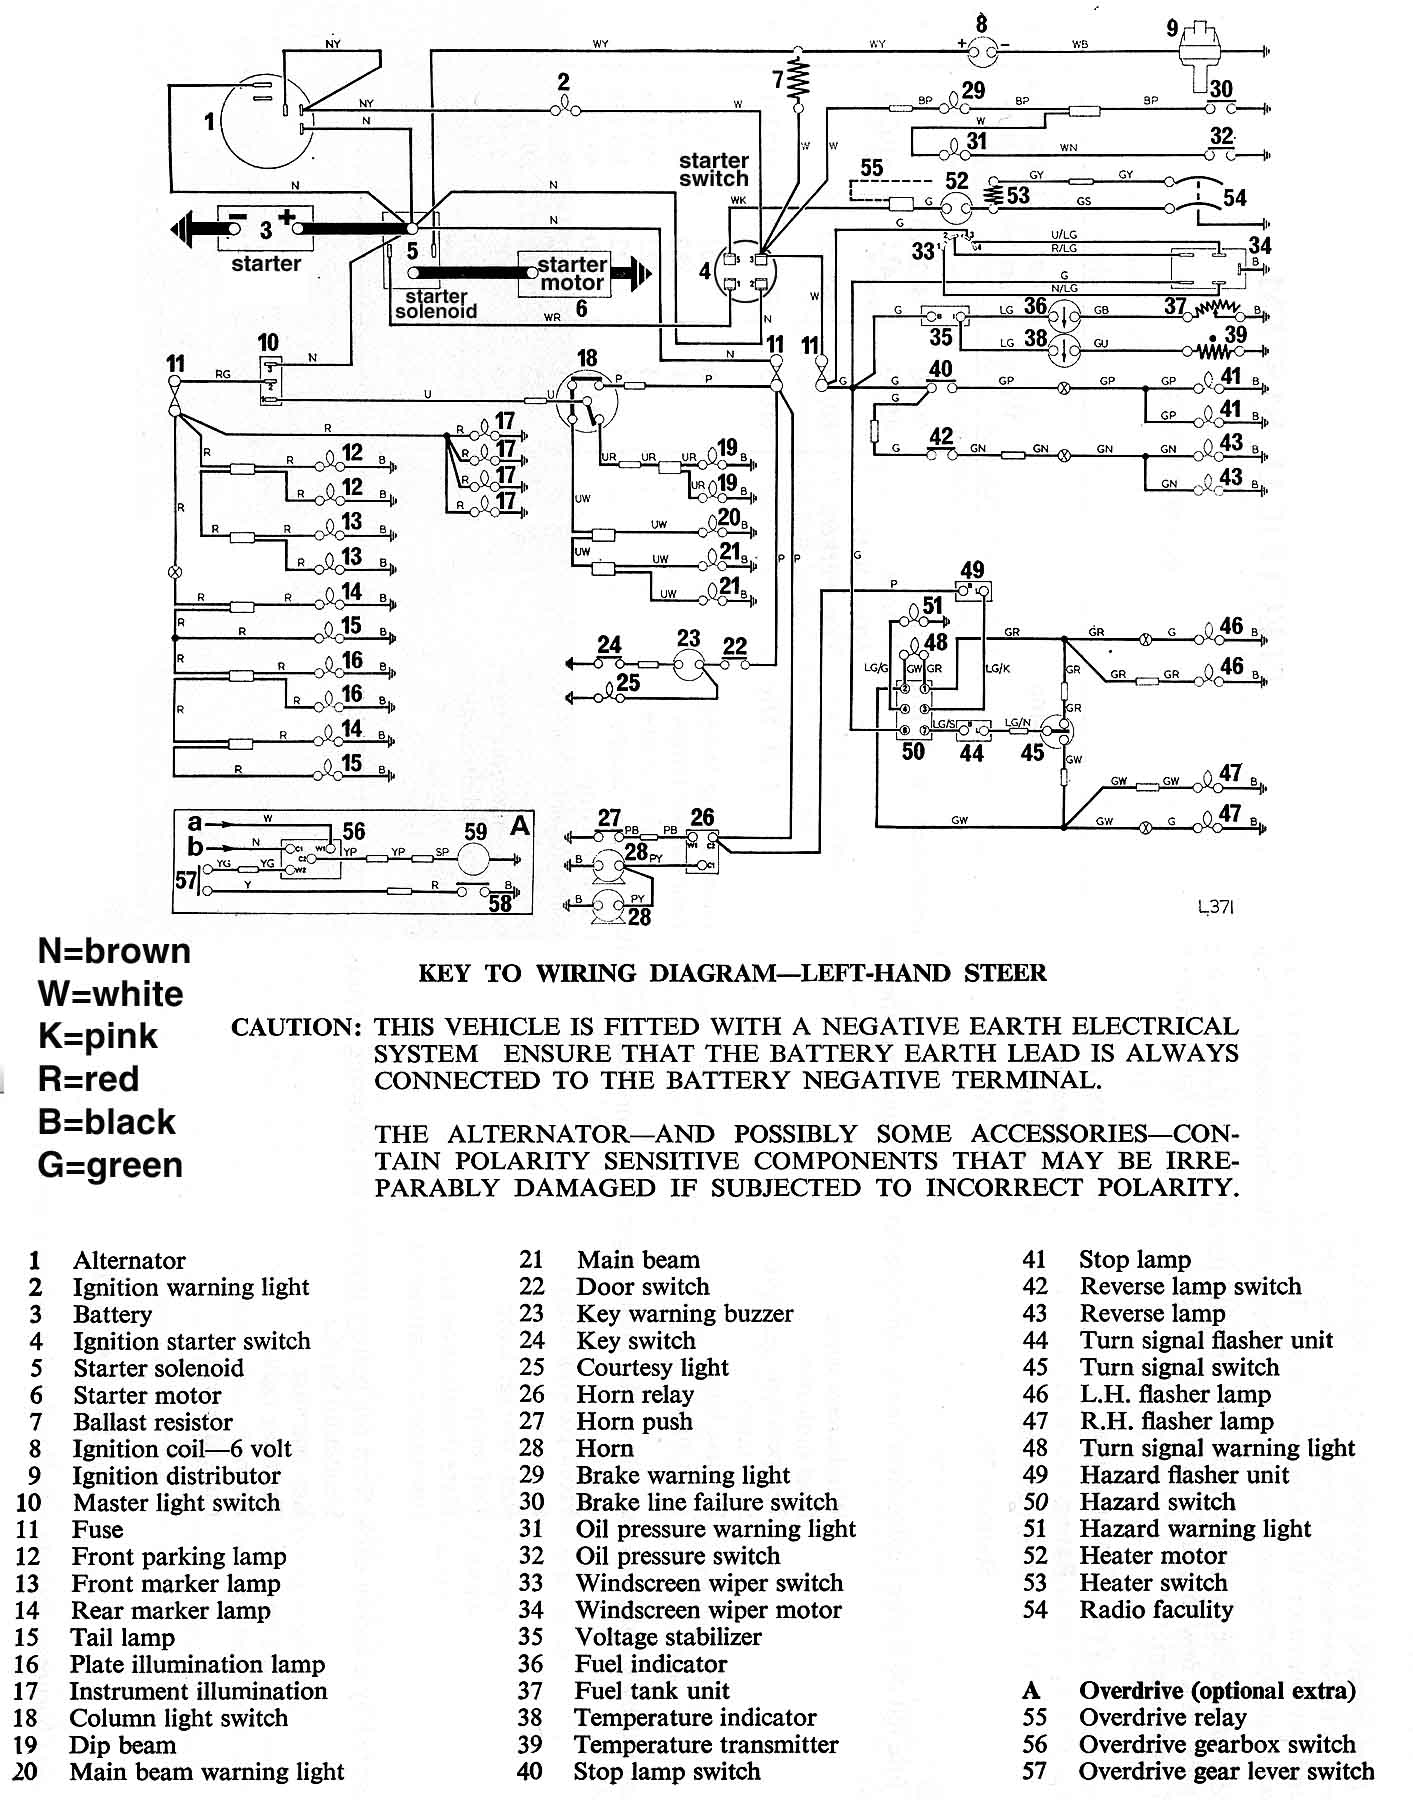 bsa wiring schematics wiring diagram dom1969 bsa wiring diagram wiring diagram suzuki wiring schematics 1969 bsa wiring diagram